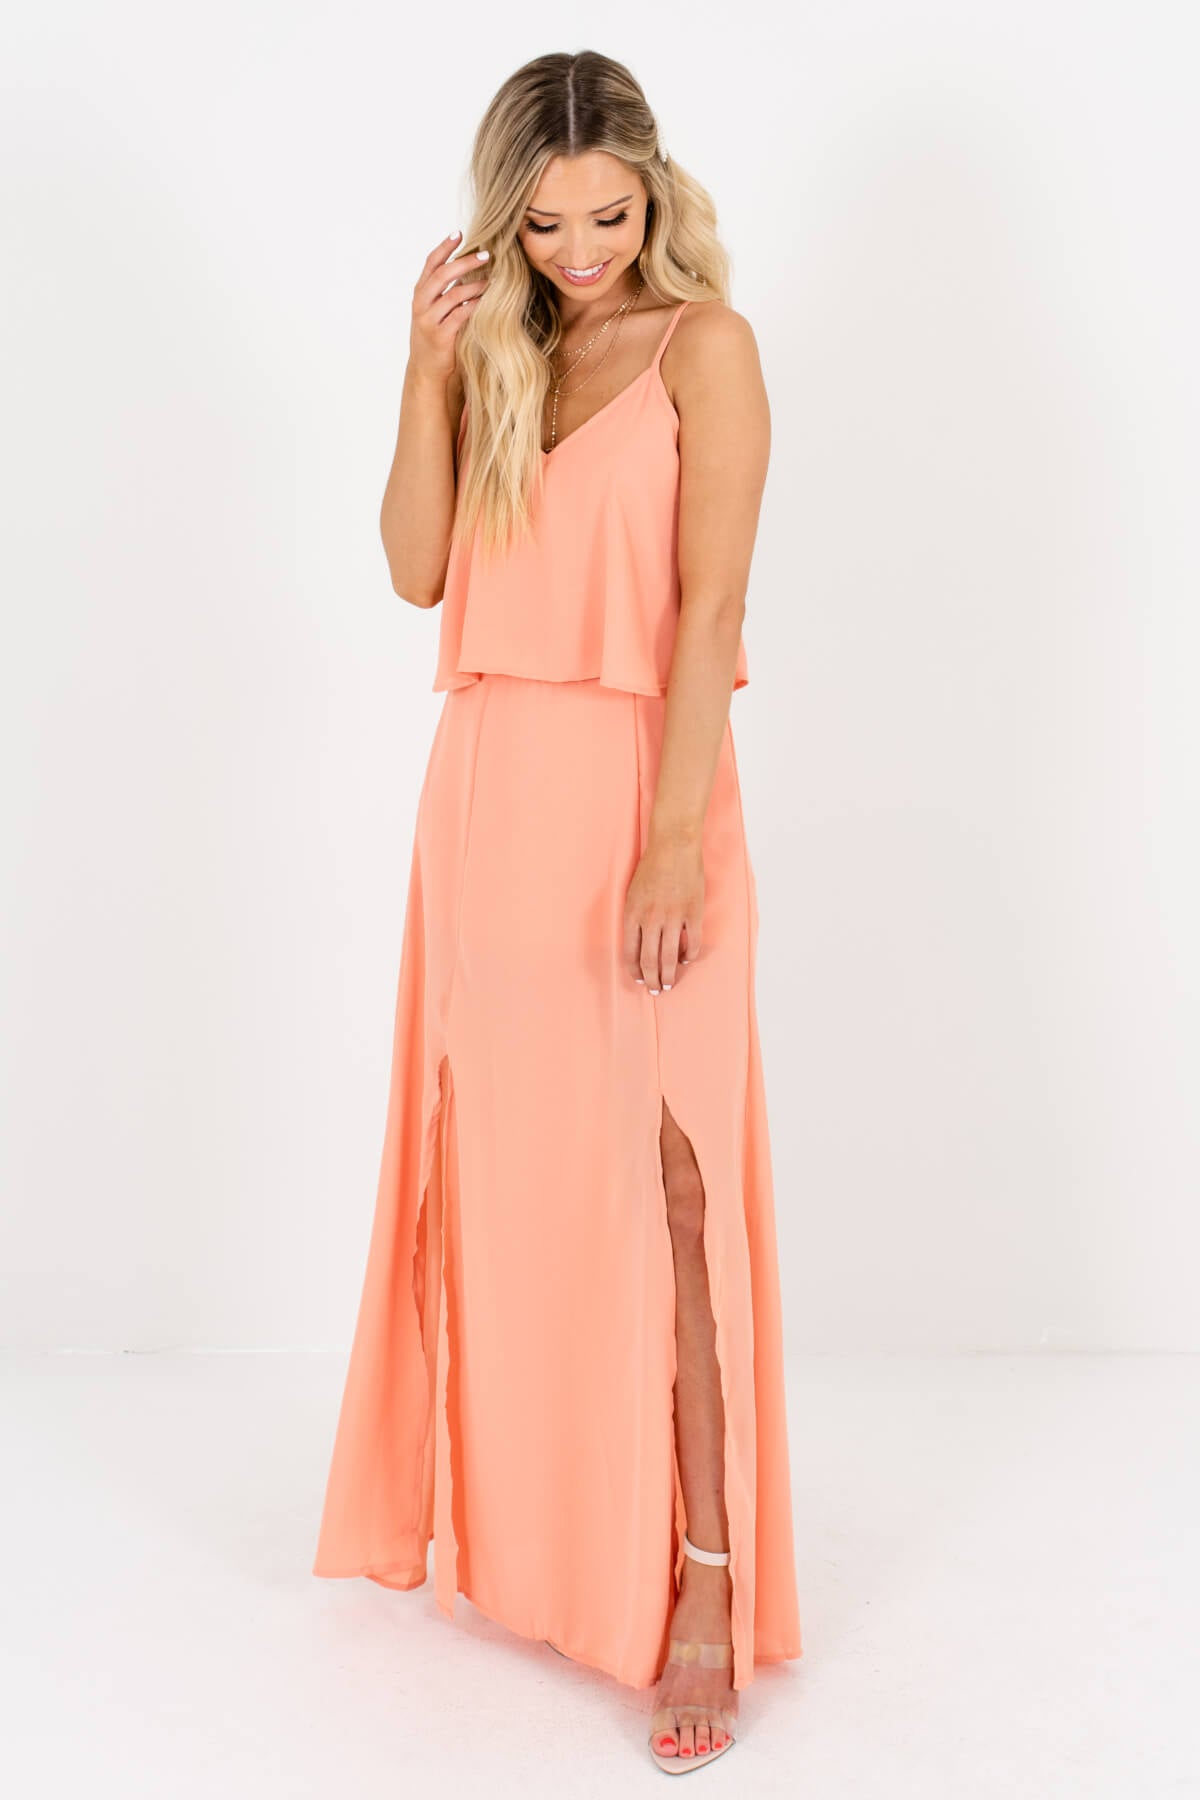 Peach Pink Boutique Maxi Length Dresses for Women